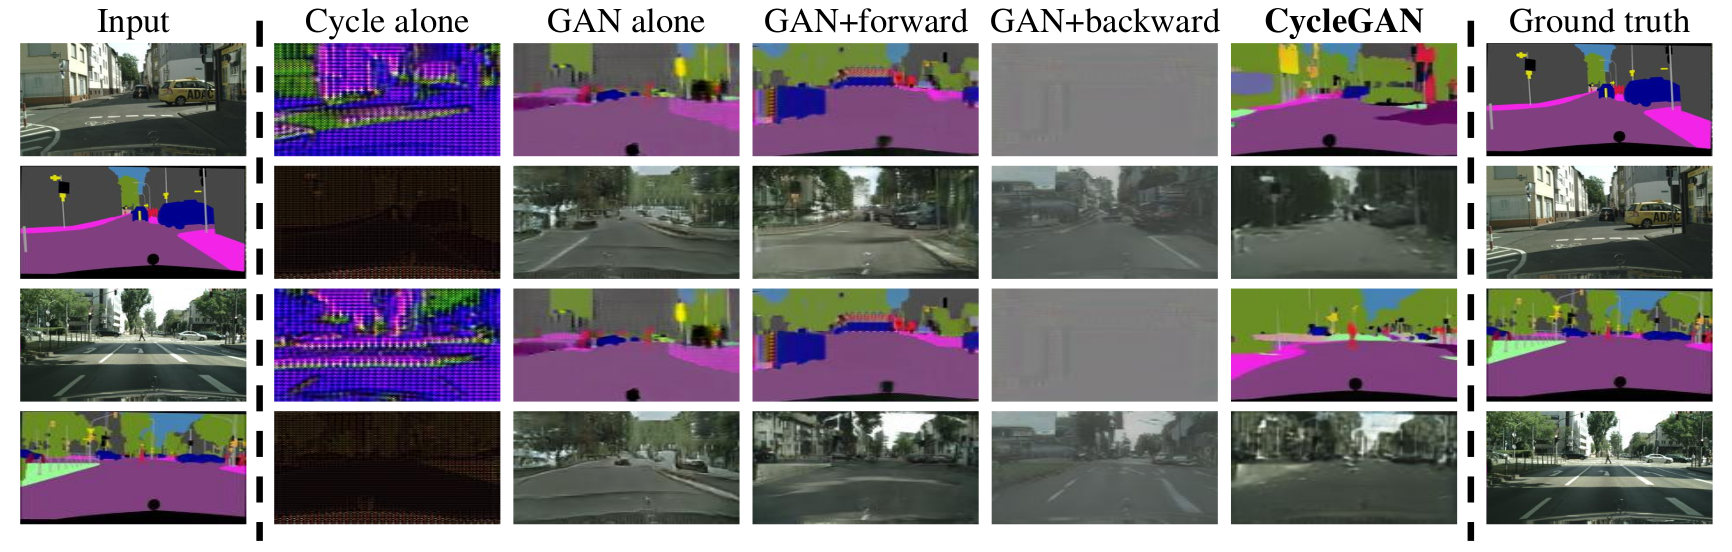 Comparison of the generated images obtained by training the model with variations of the loss function